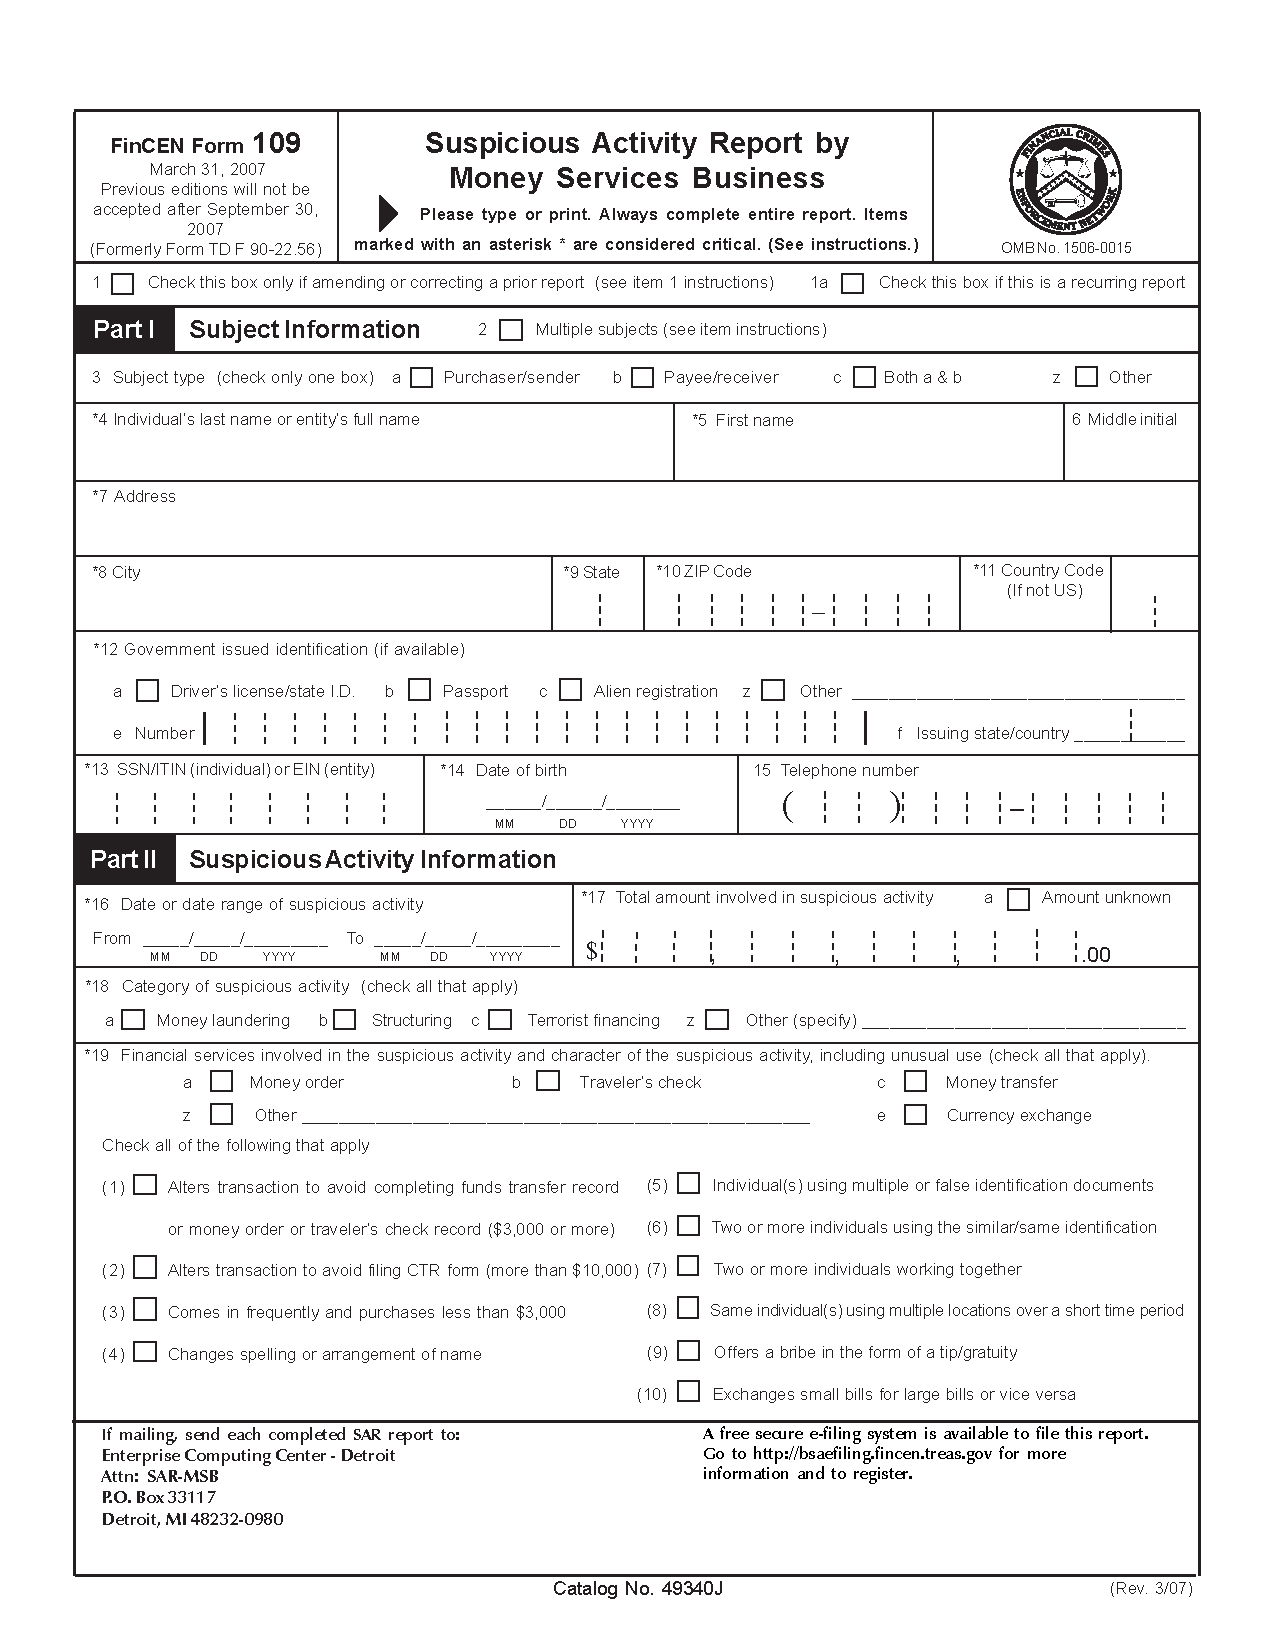 Form FinCEN109 Suspicious Activity Report by Money Services Business